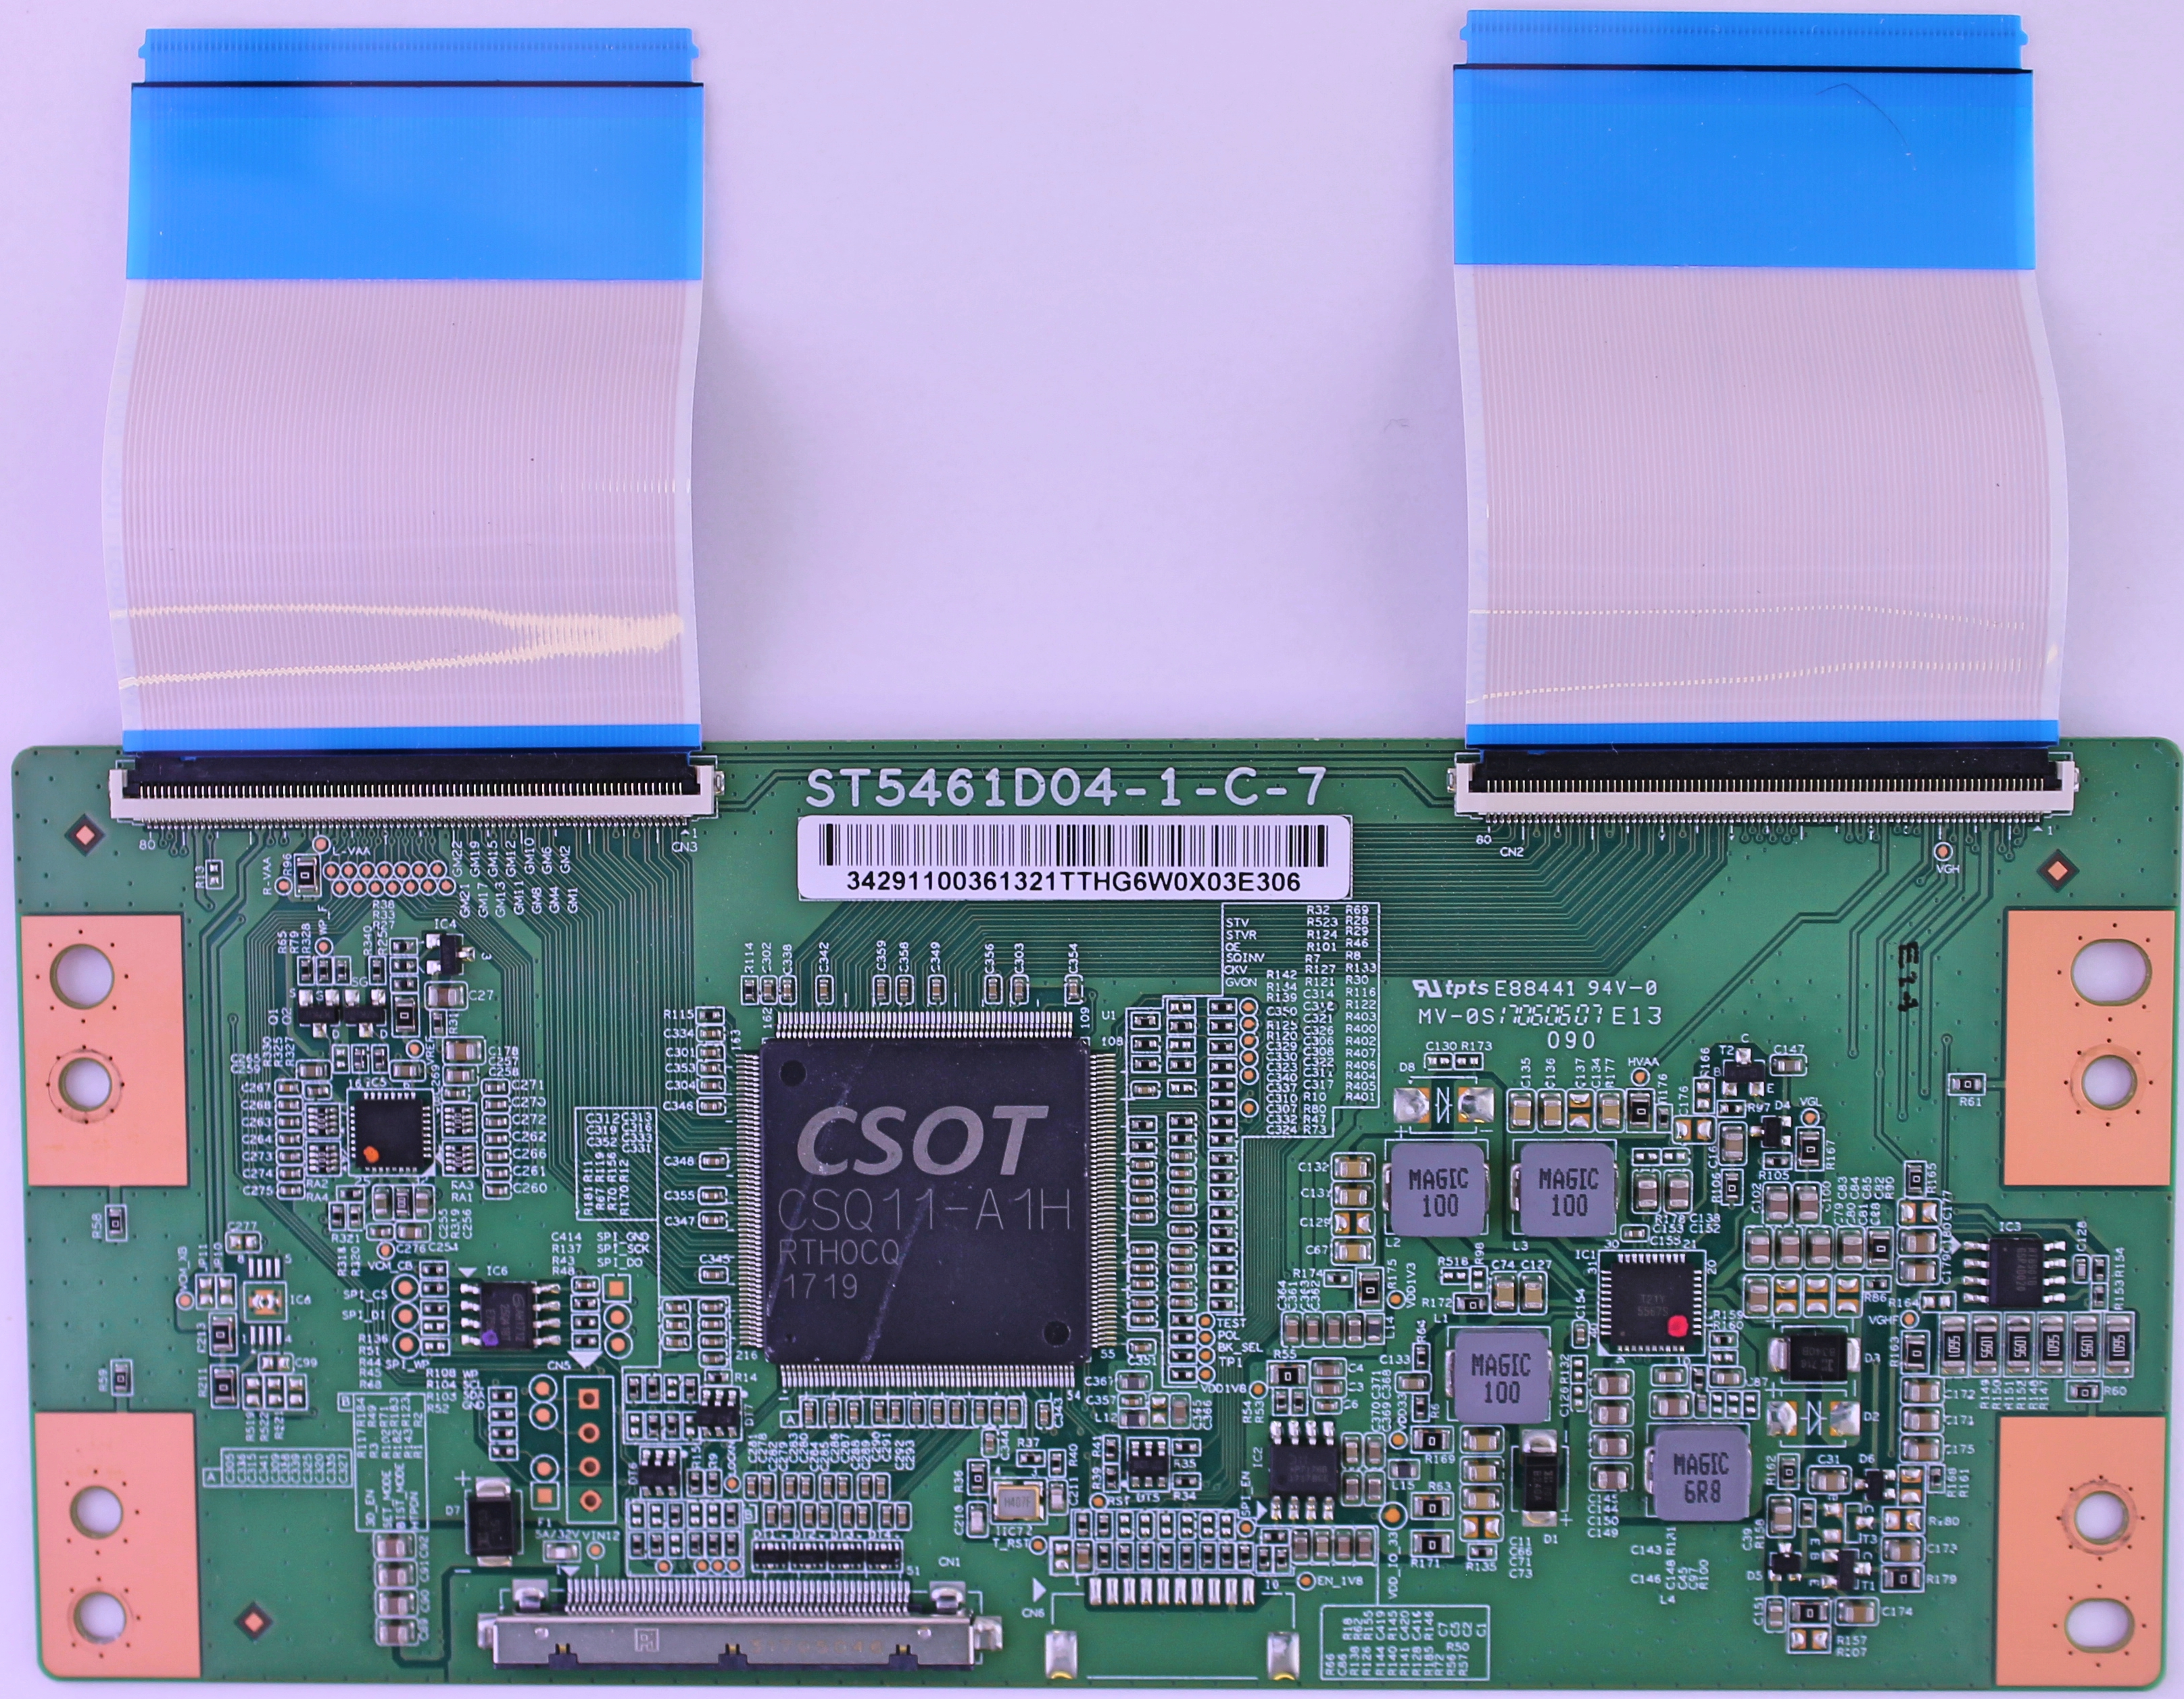 ST5461D04-1-C-7 TCL T-con board for TV model 55P607